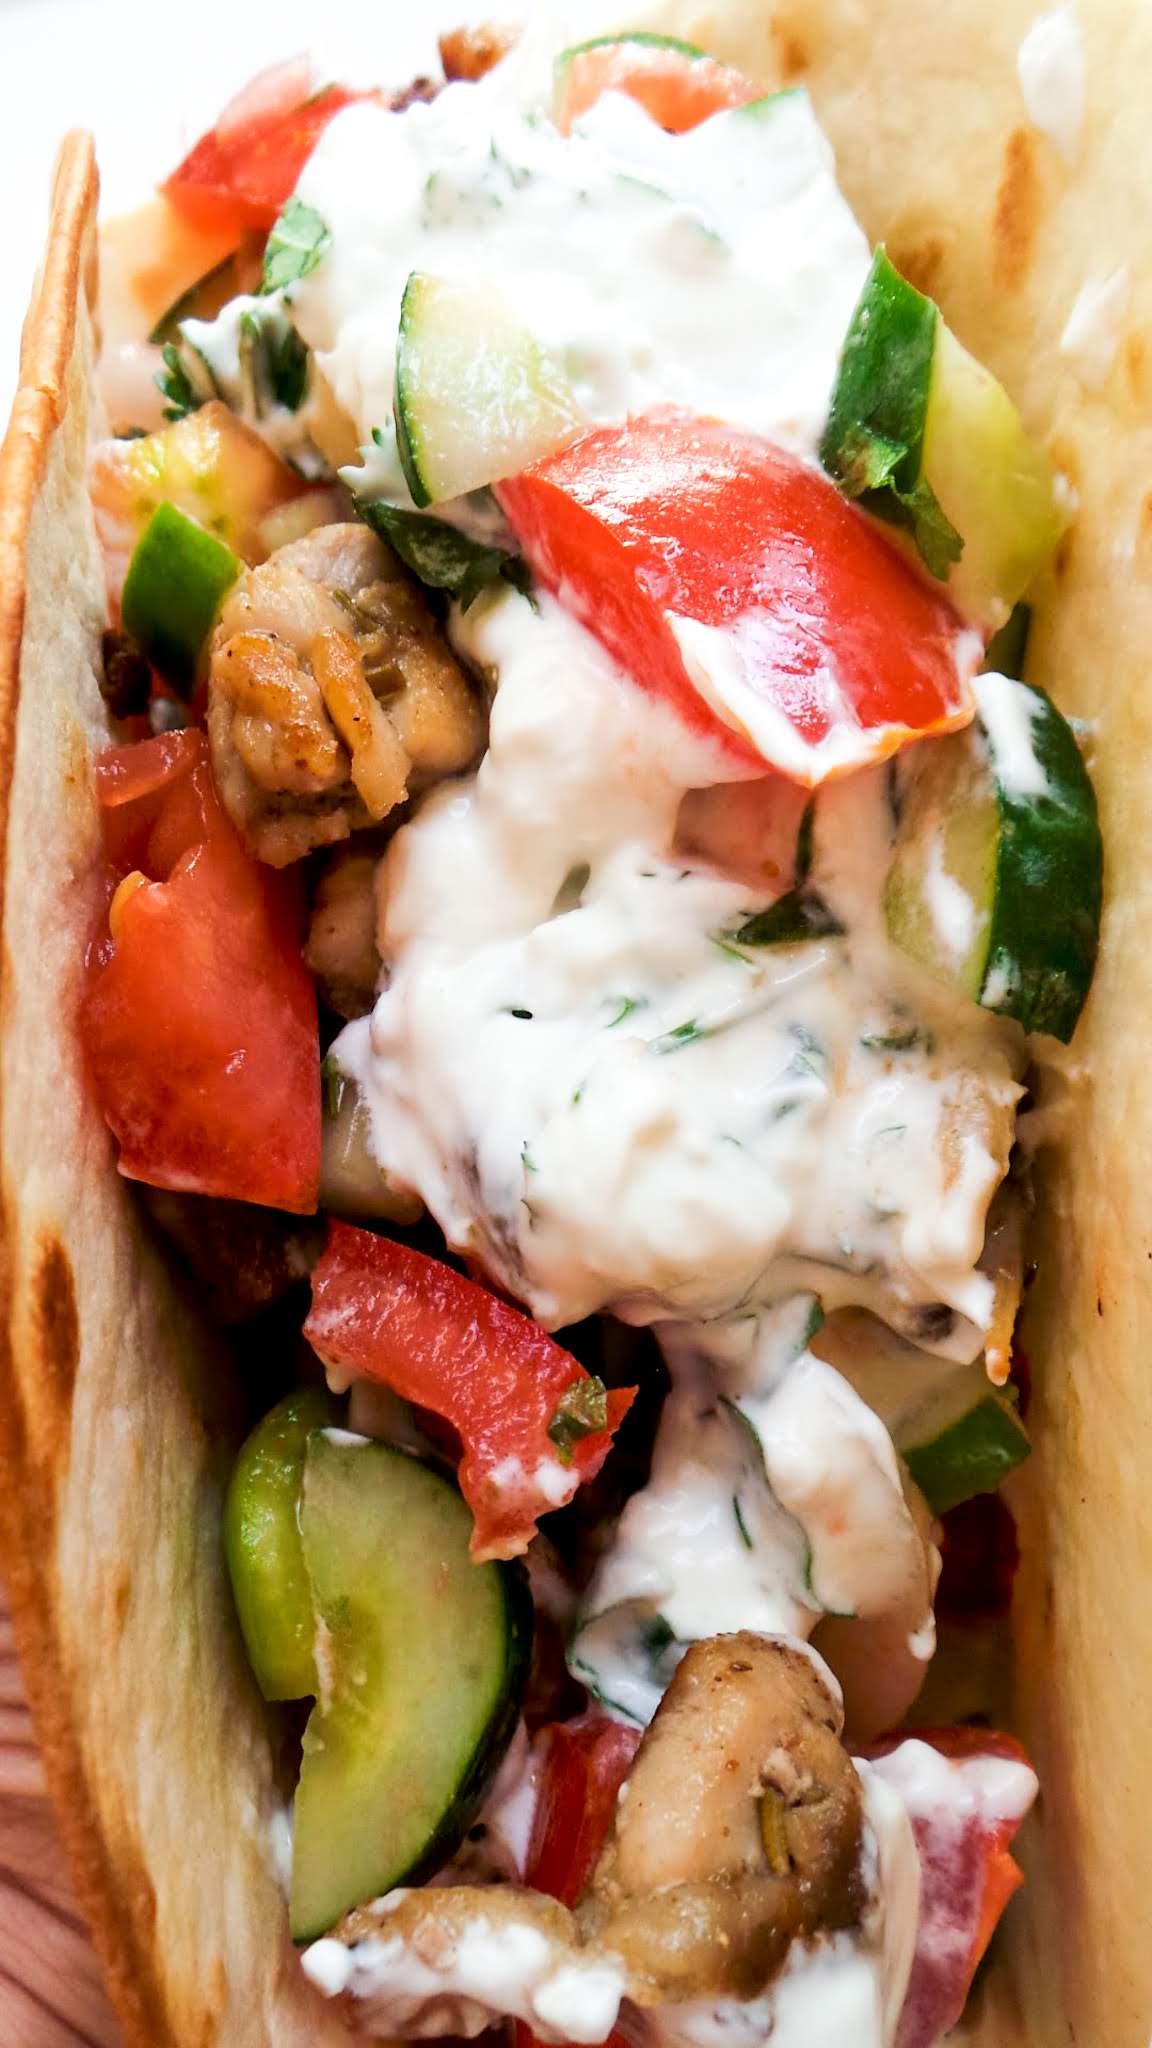 Homemade gyros recipe! This chicken gyros with tzatziki sauce is easy, healthy and super delicious! This is a very tasty Mediterranean / Greek chicken recipe that you can either meal prep for the week ahead or share at dinner with others!